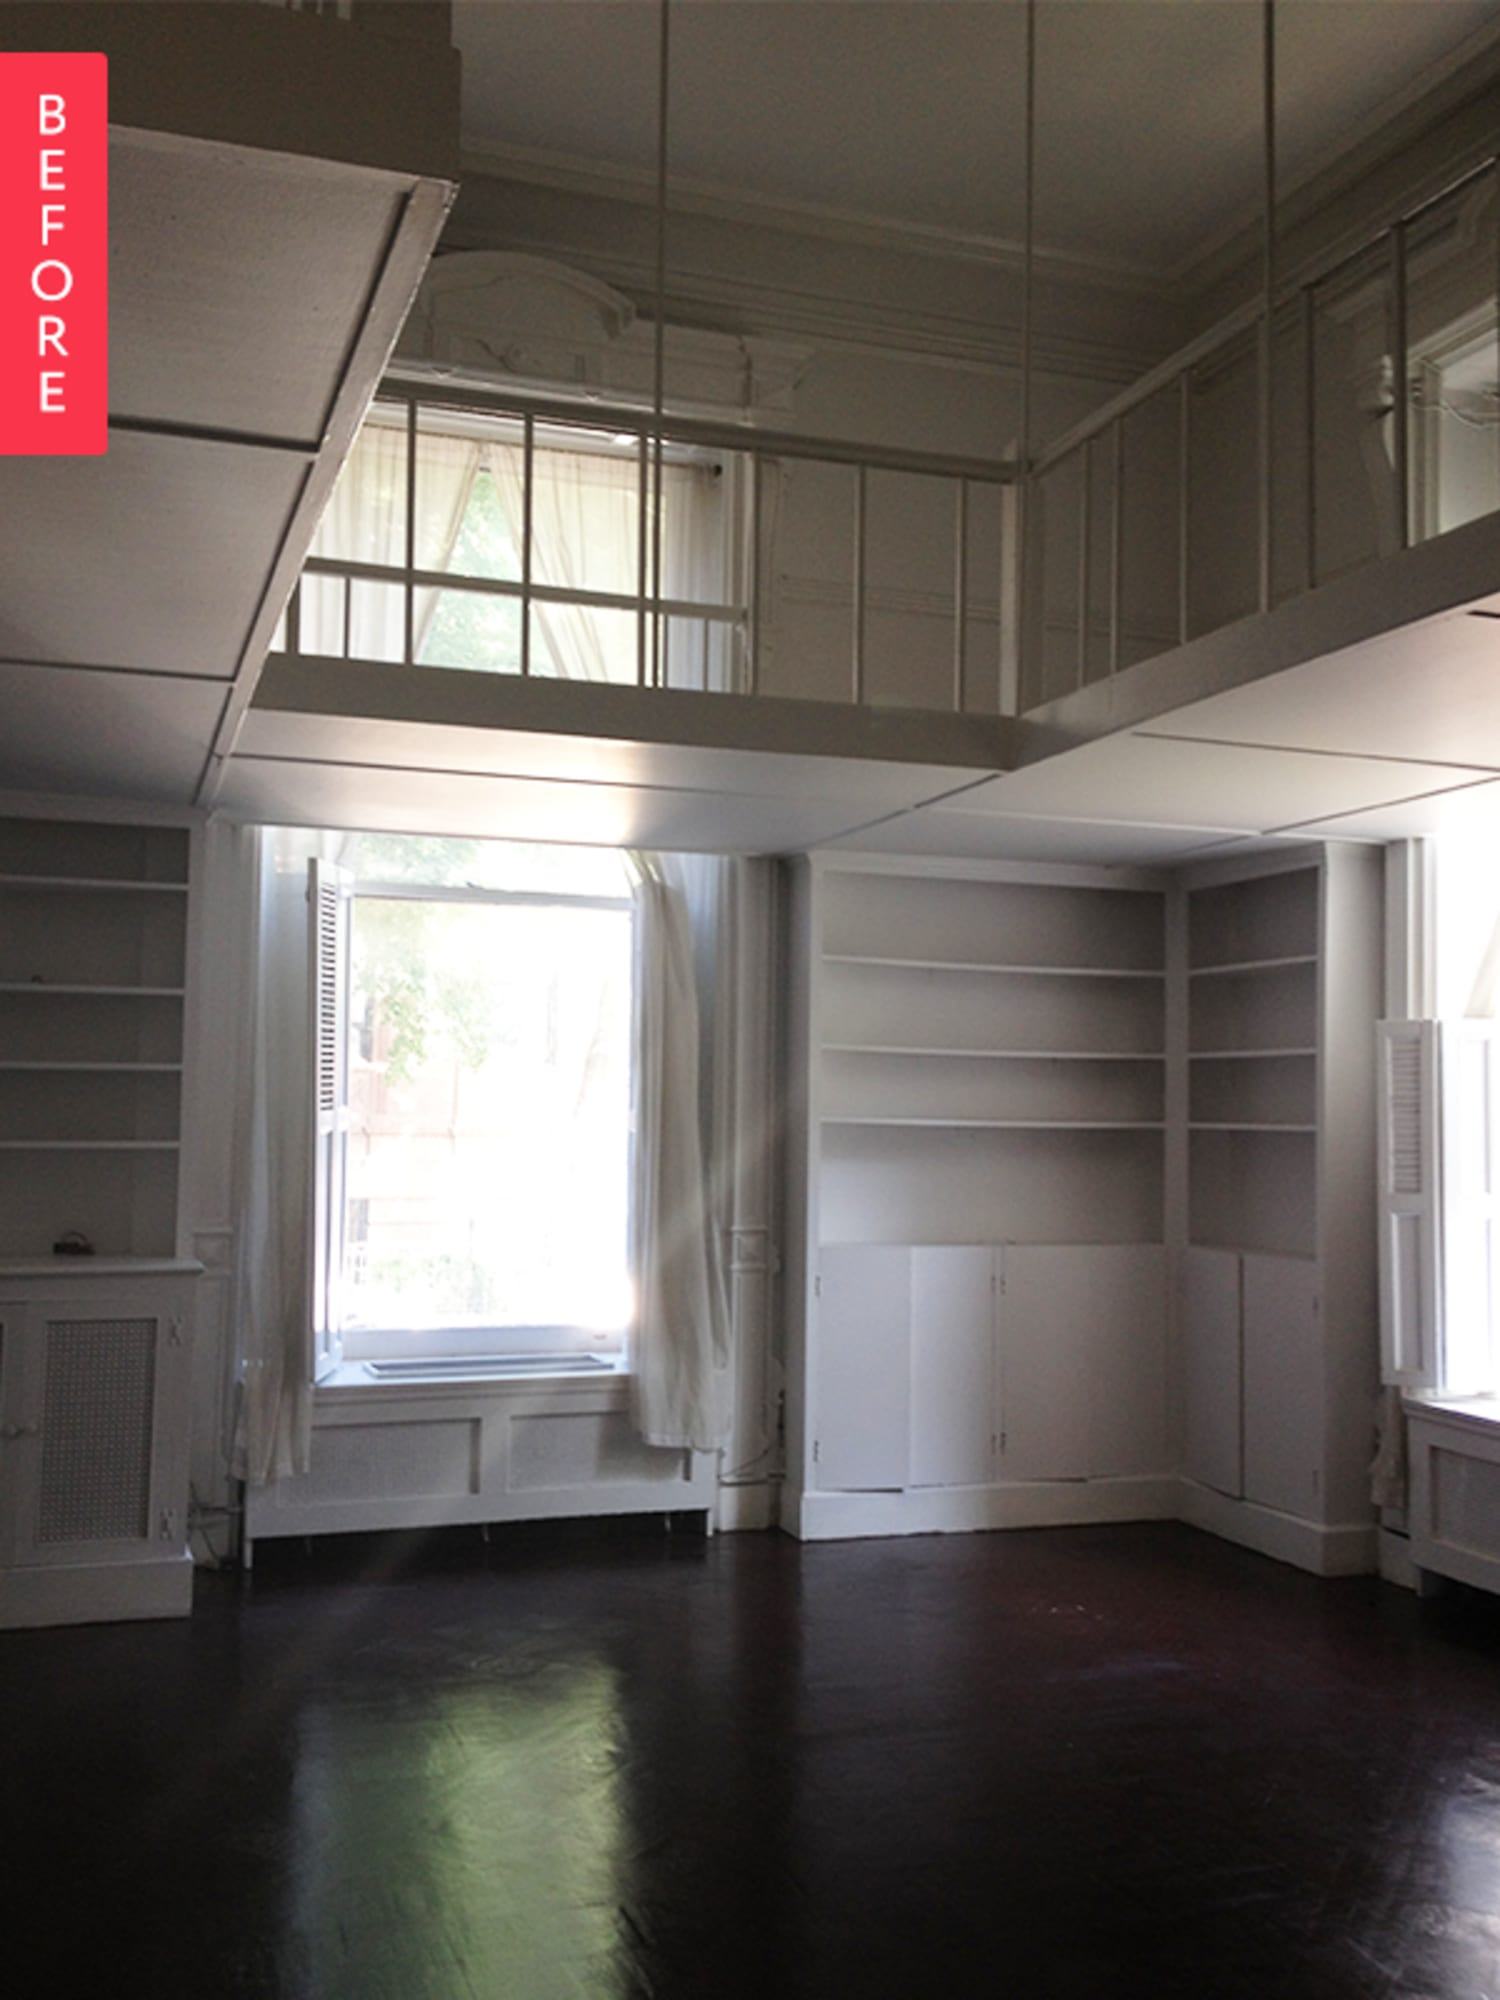 Before & After: A Dark Studio Gets a Smart New Layout & A lot More Light